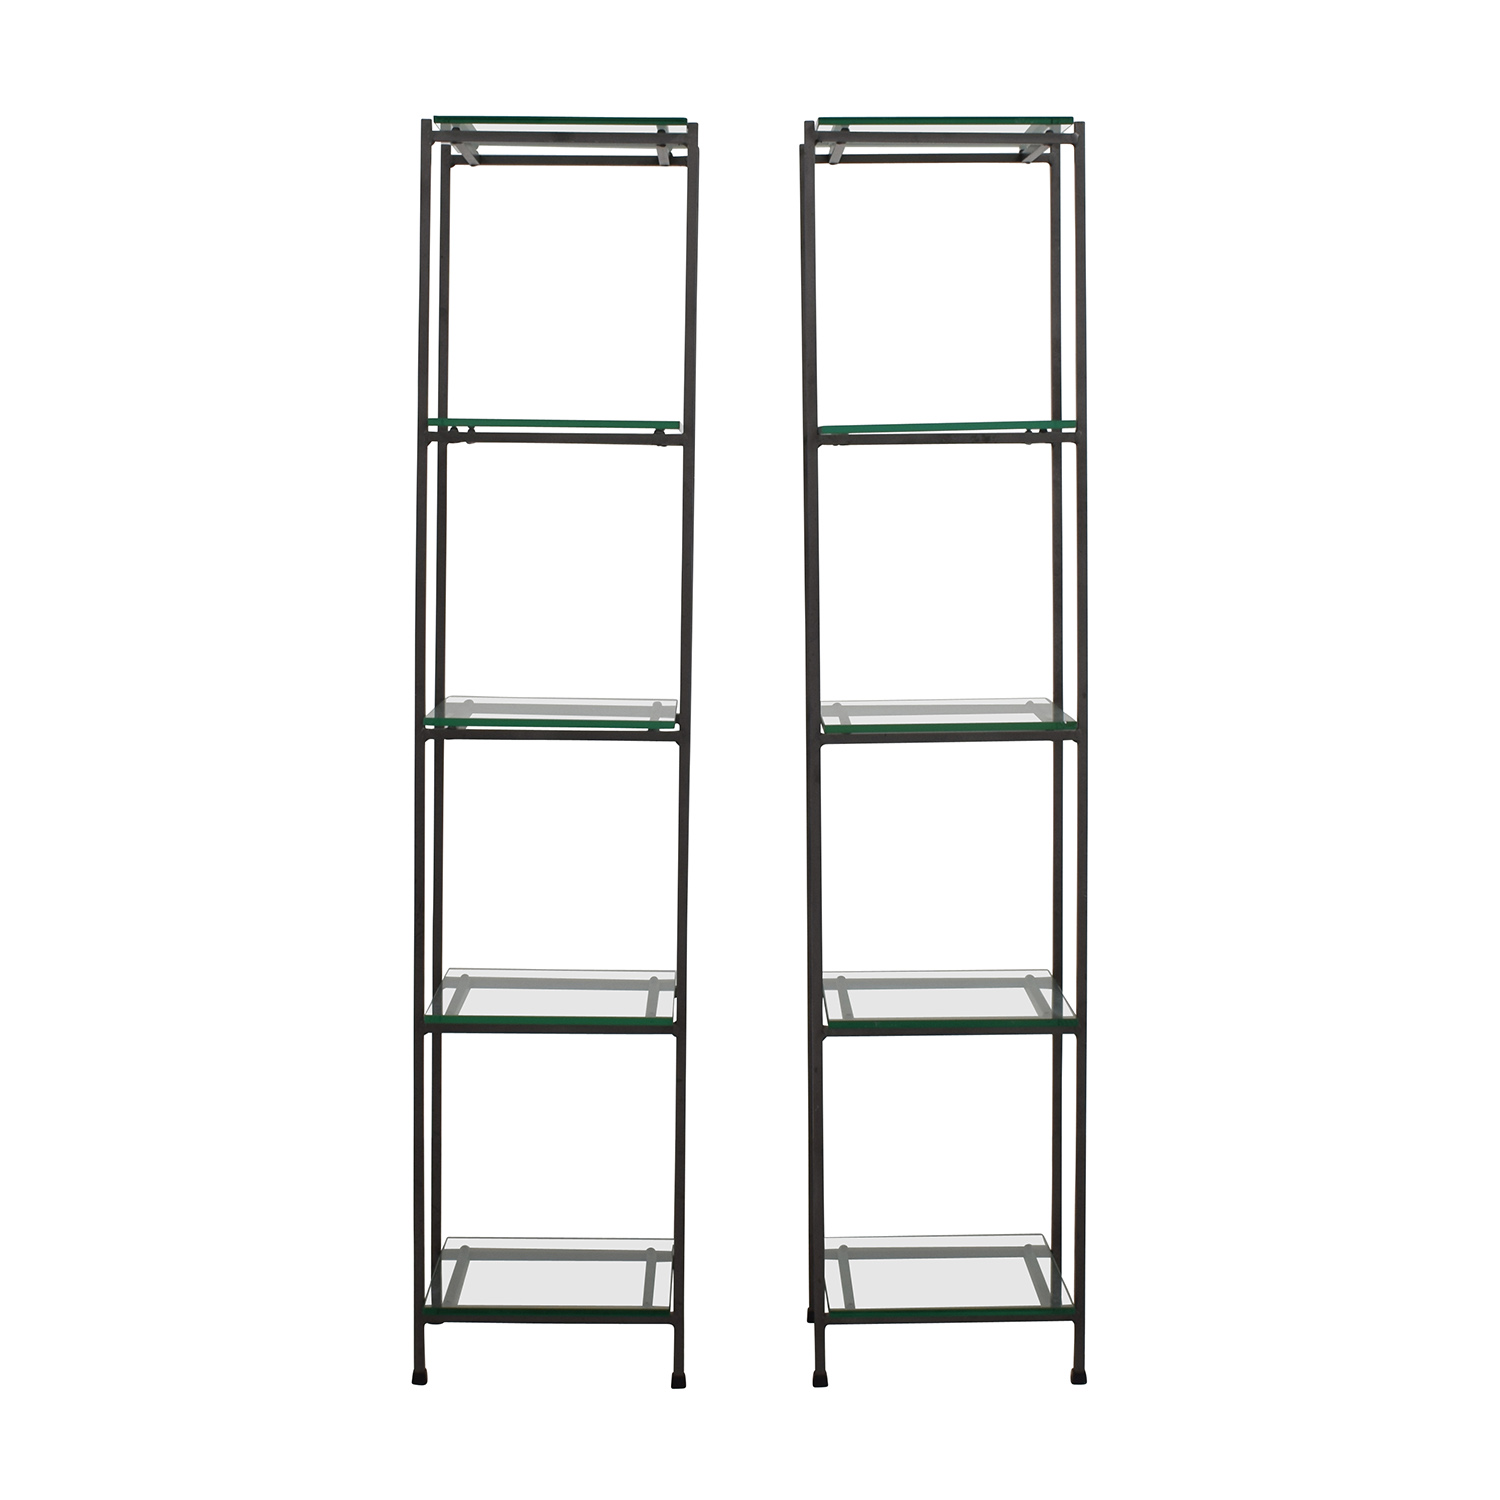 Crate & Barrel Crate & Barrel Glass Bookcases Bookcases & Shelving